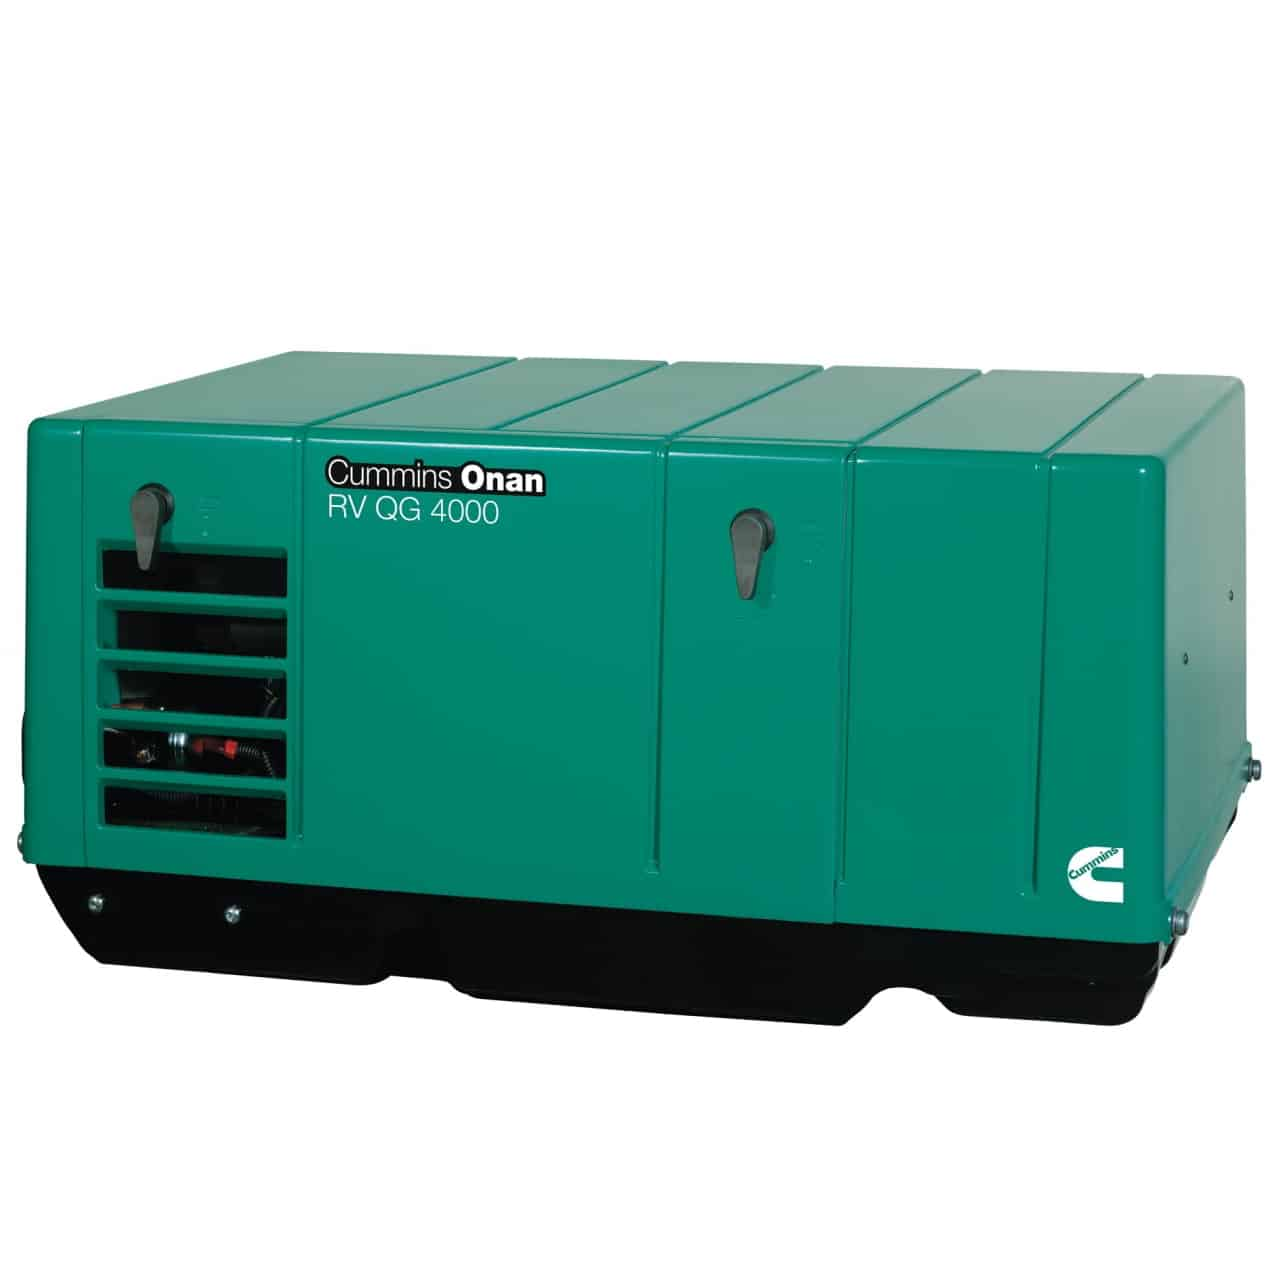 hight resolution of cummins onan rv qg 4000 watt generator gasoline rv 4kyfa26100 norwall powersystems